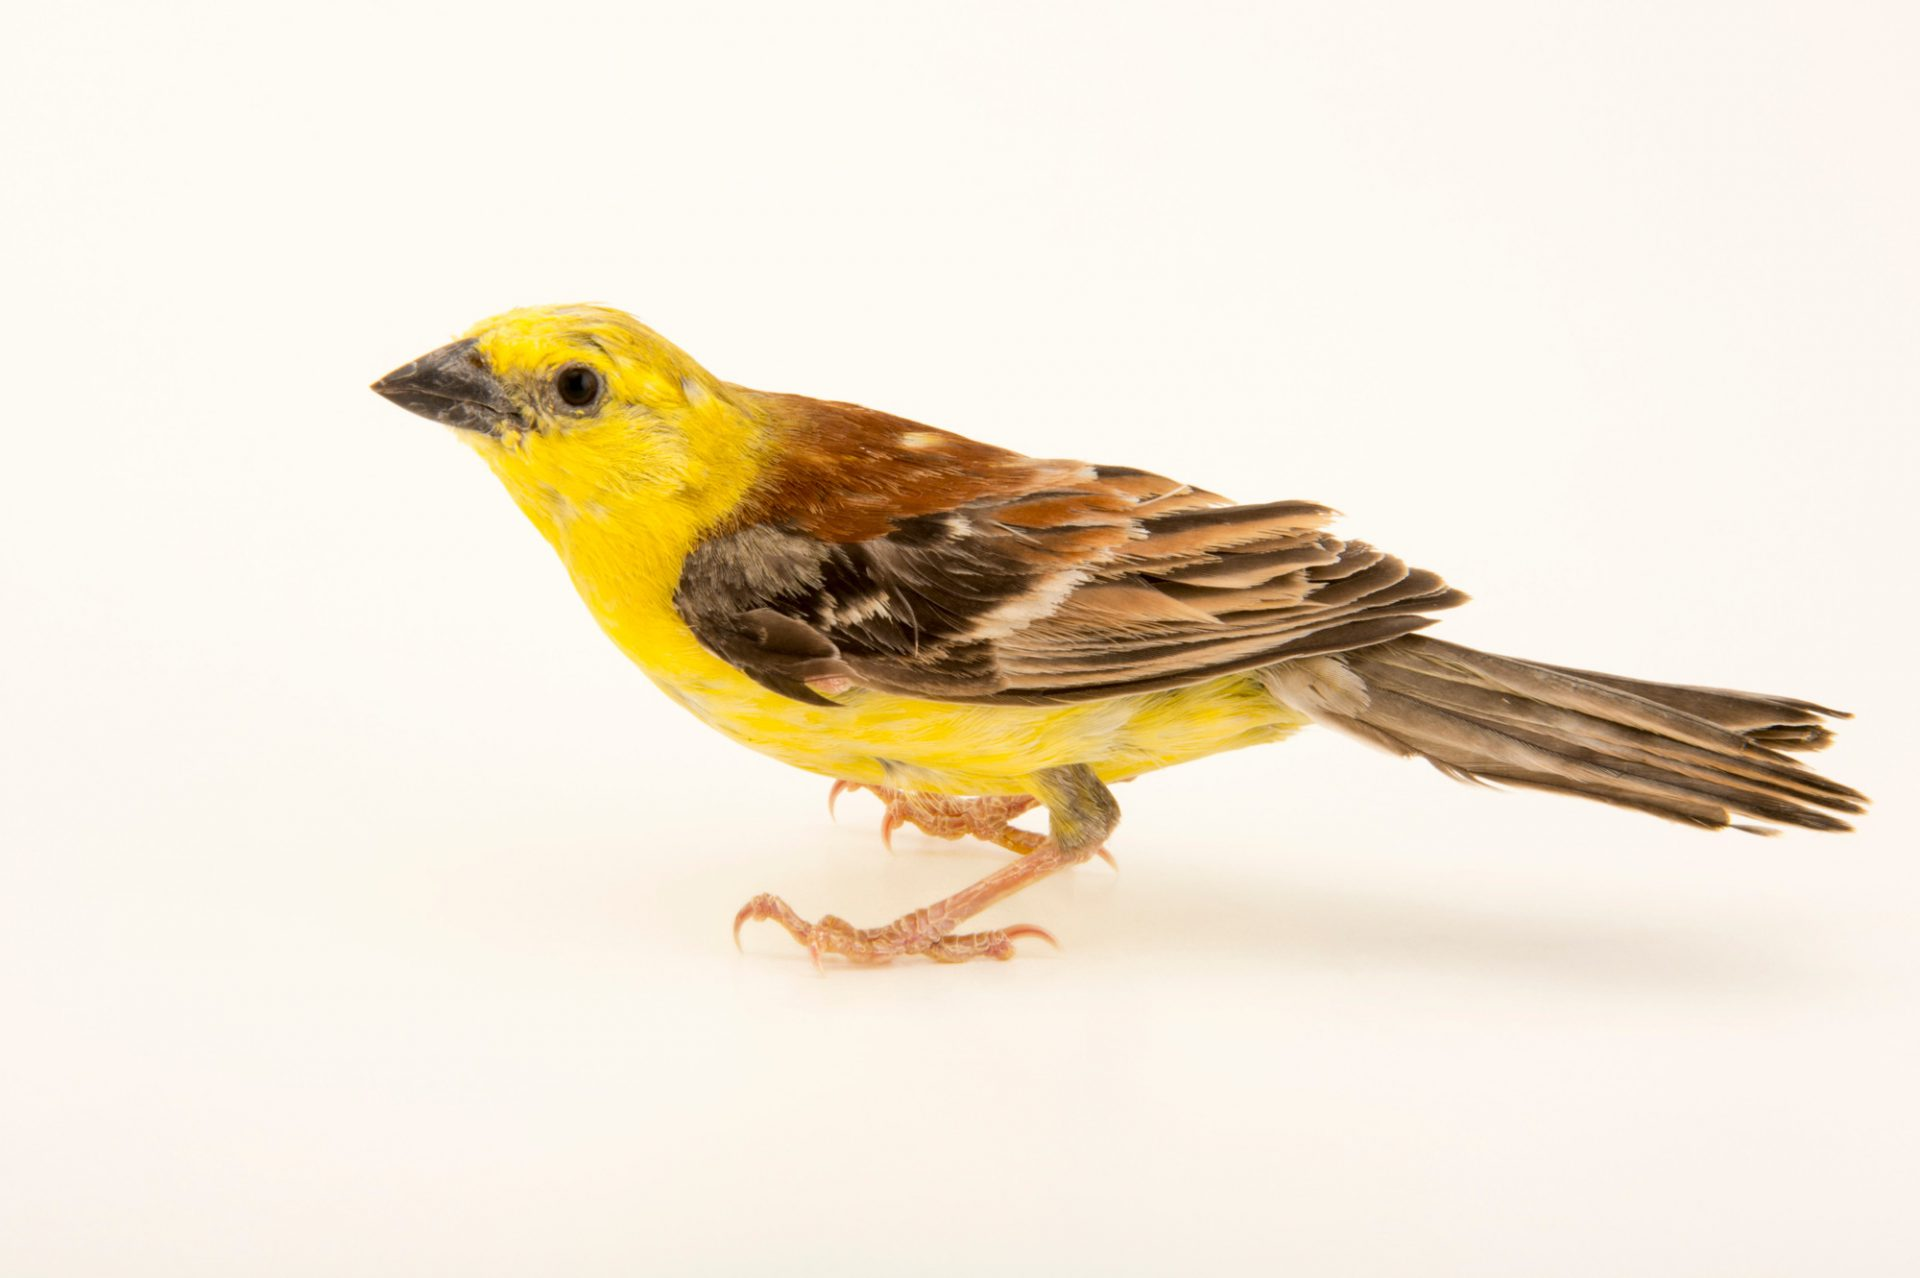 Photo: Sudan golden sparrow (Passer luteus) in Choussy, France.